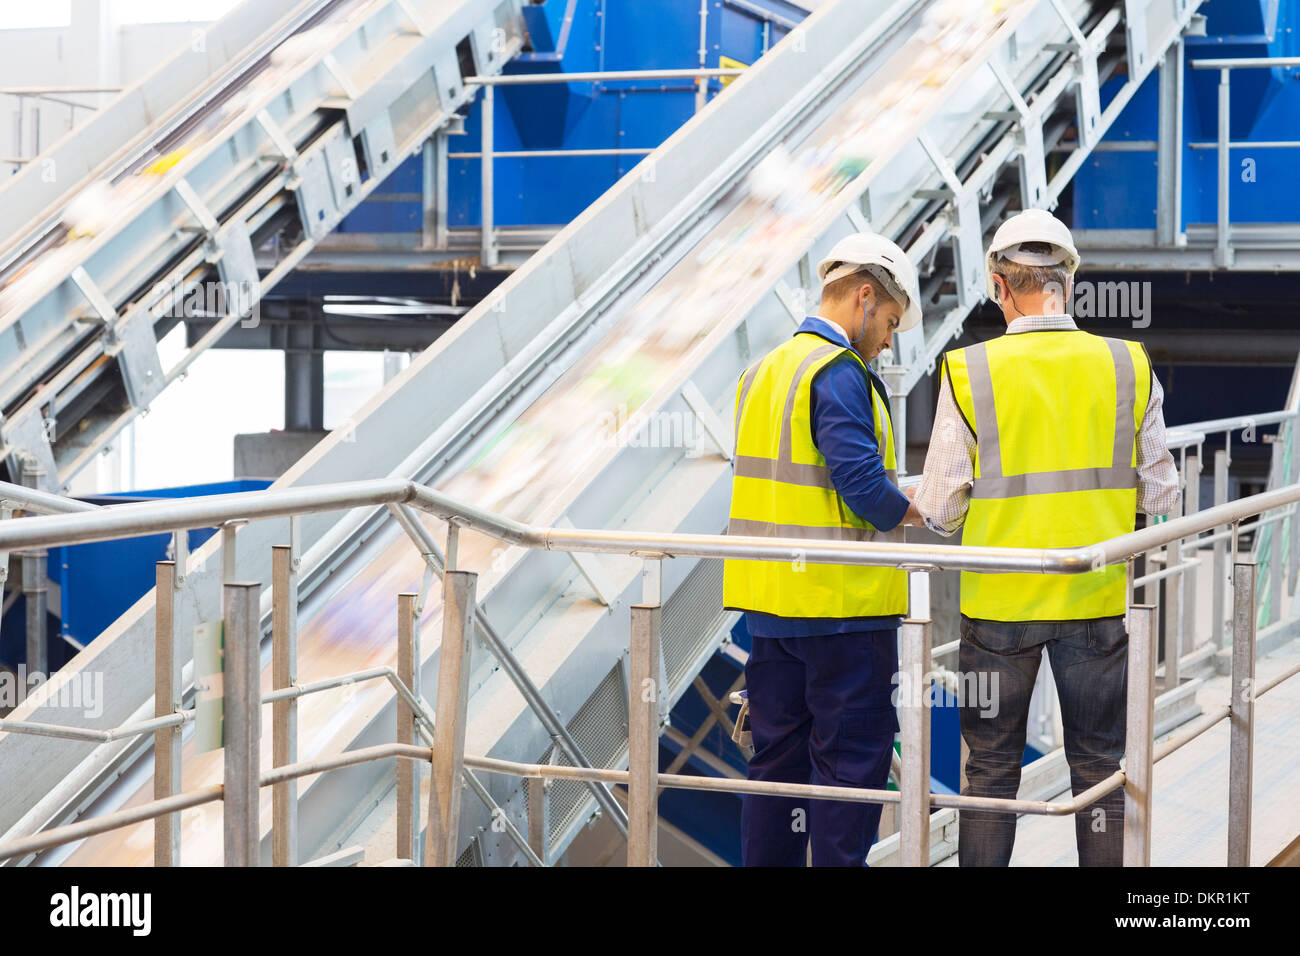 Workers talking in recycling center - Stock Image